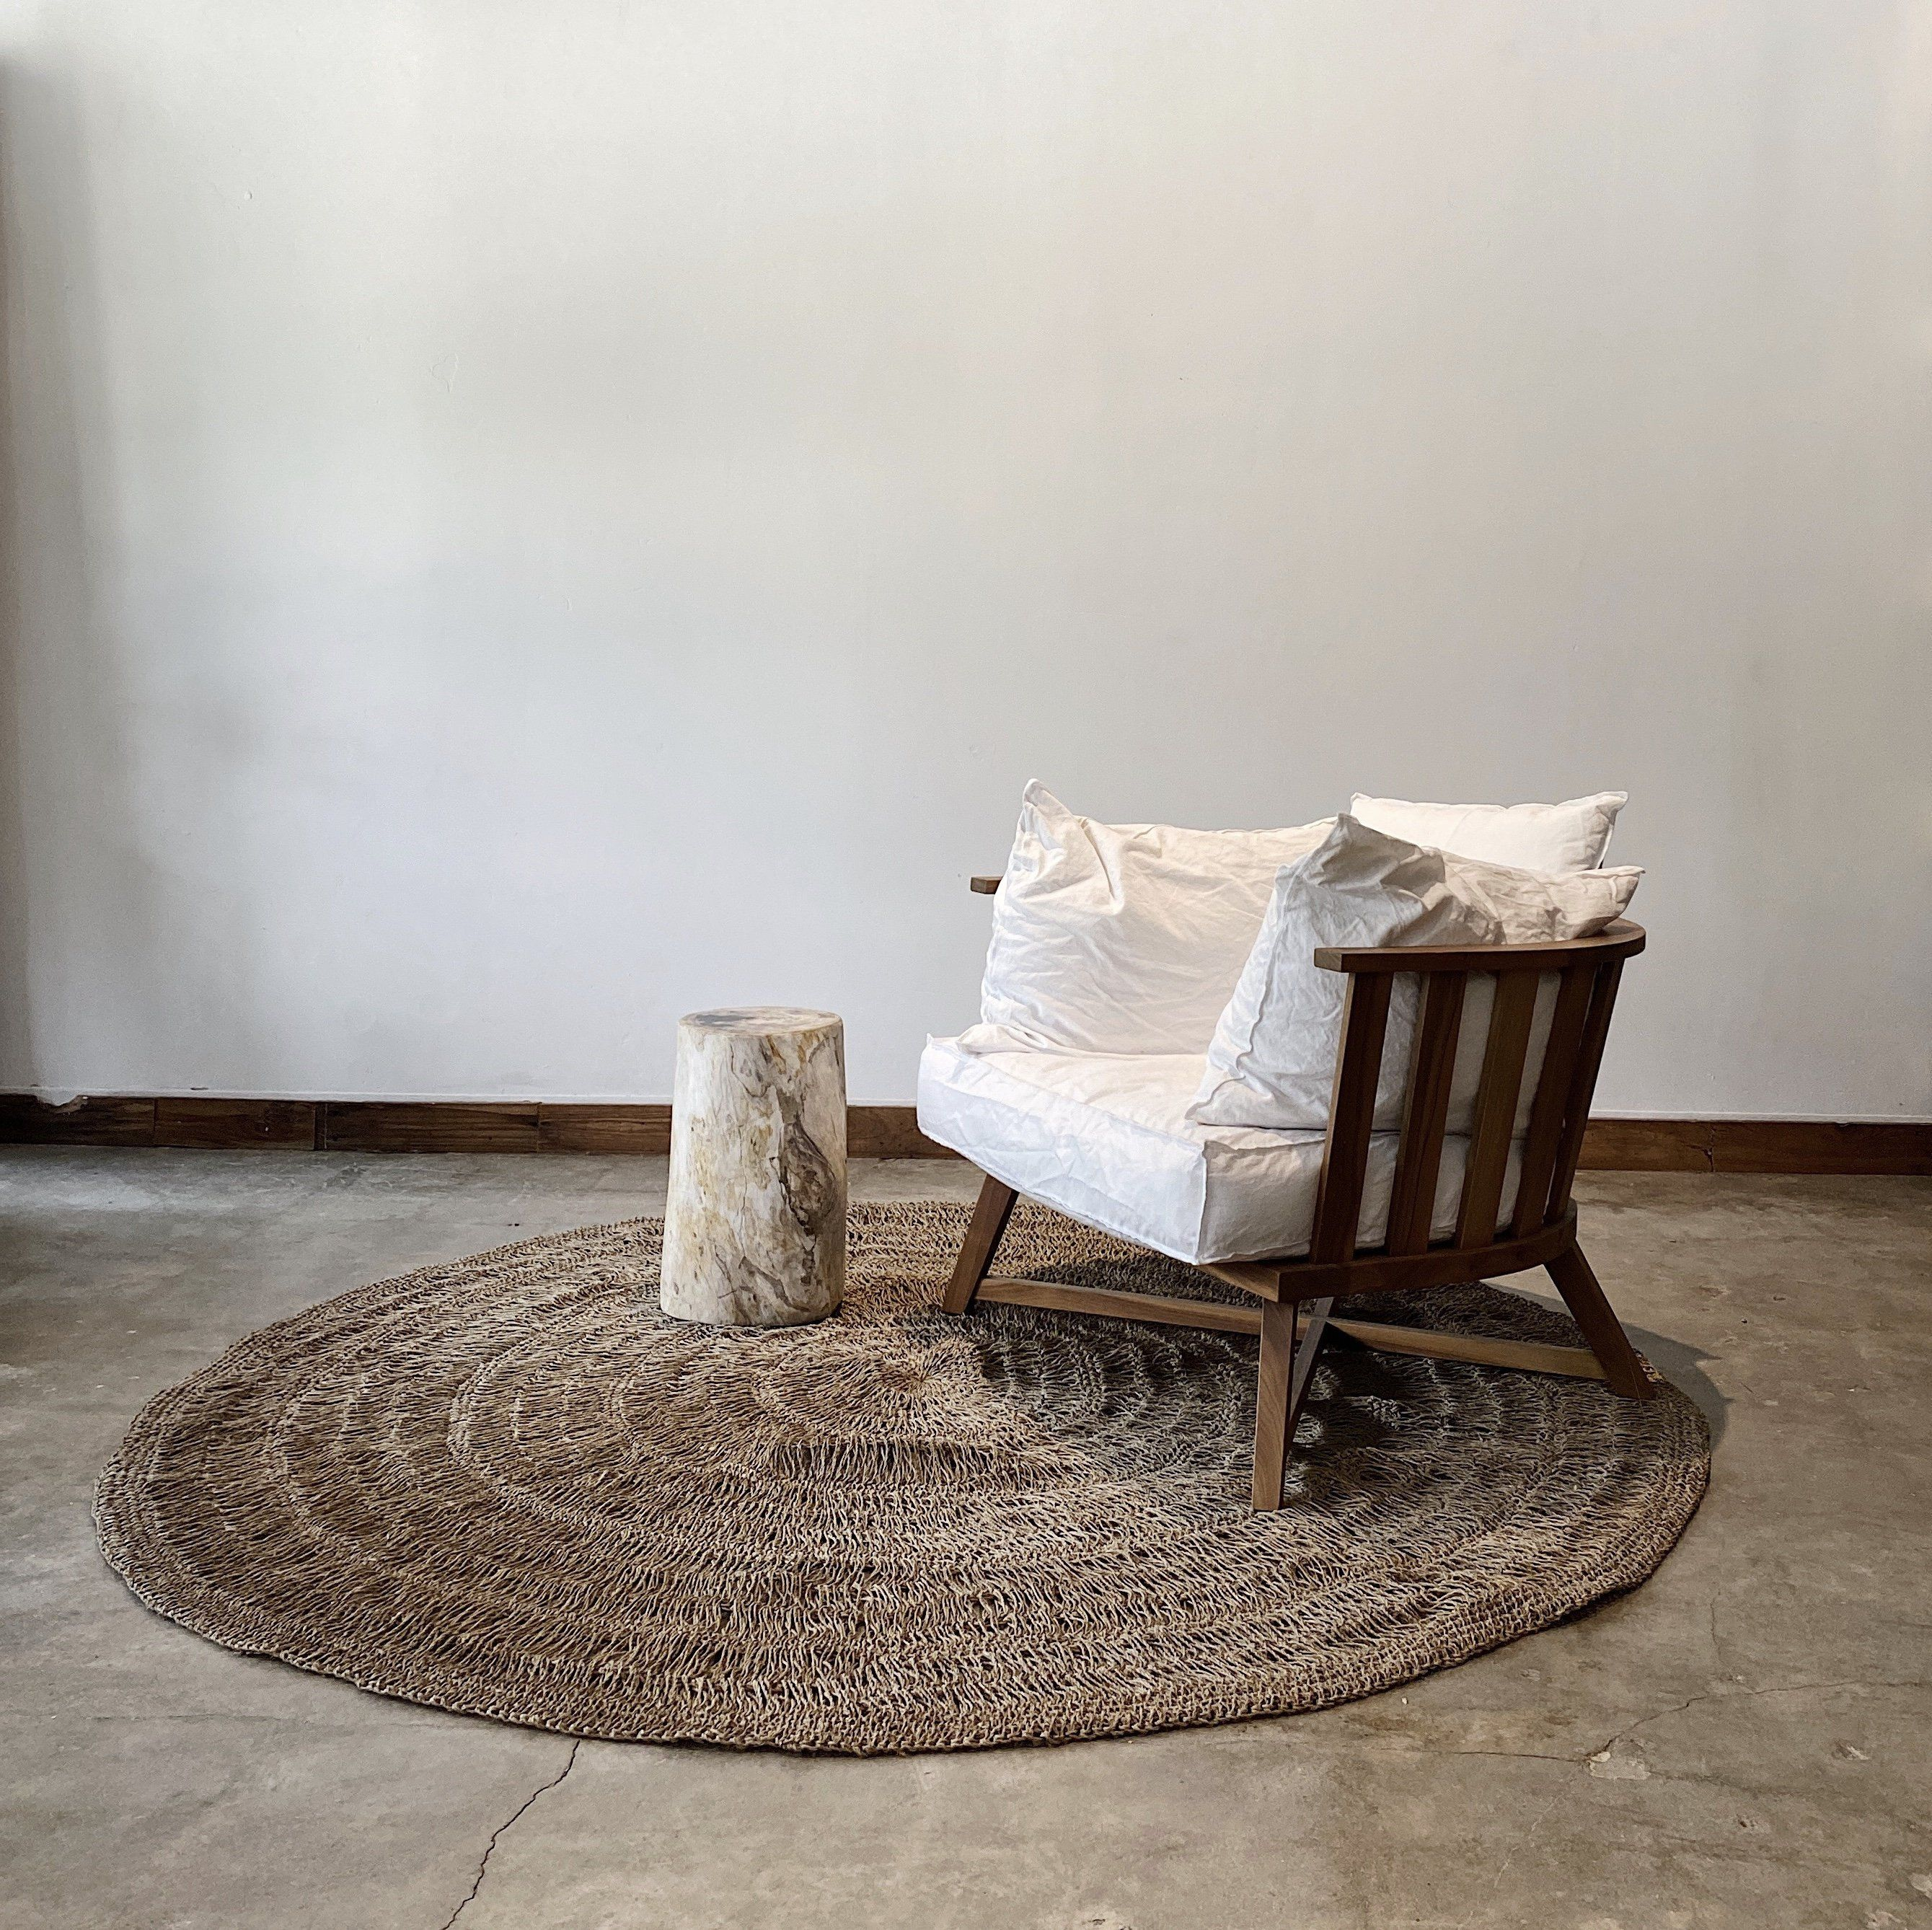 Photo of Round Handwoven Pandan Rug, Natural material for natural looks